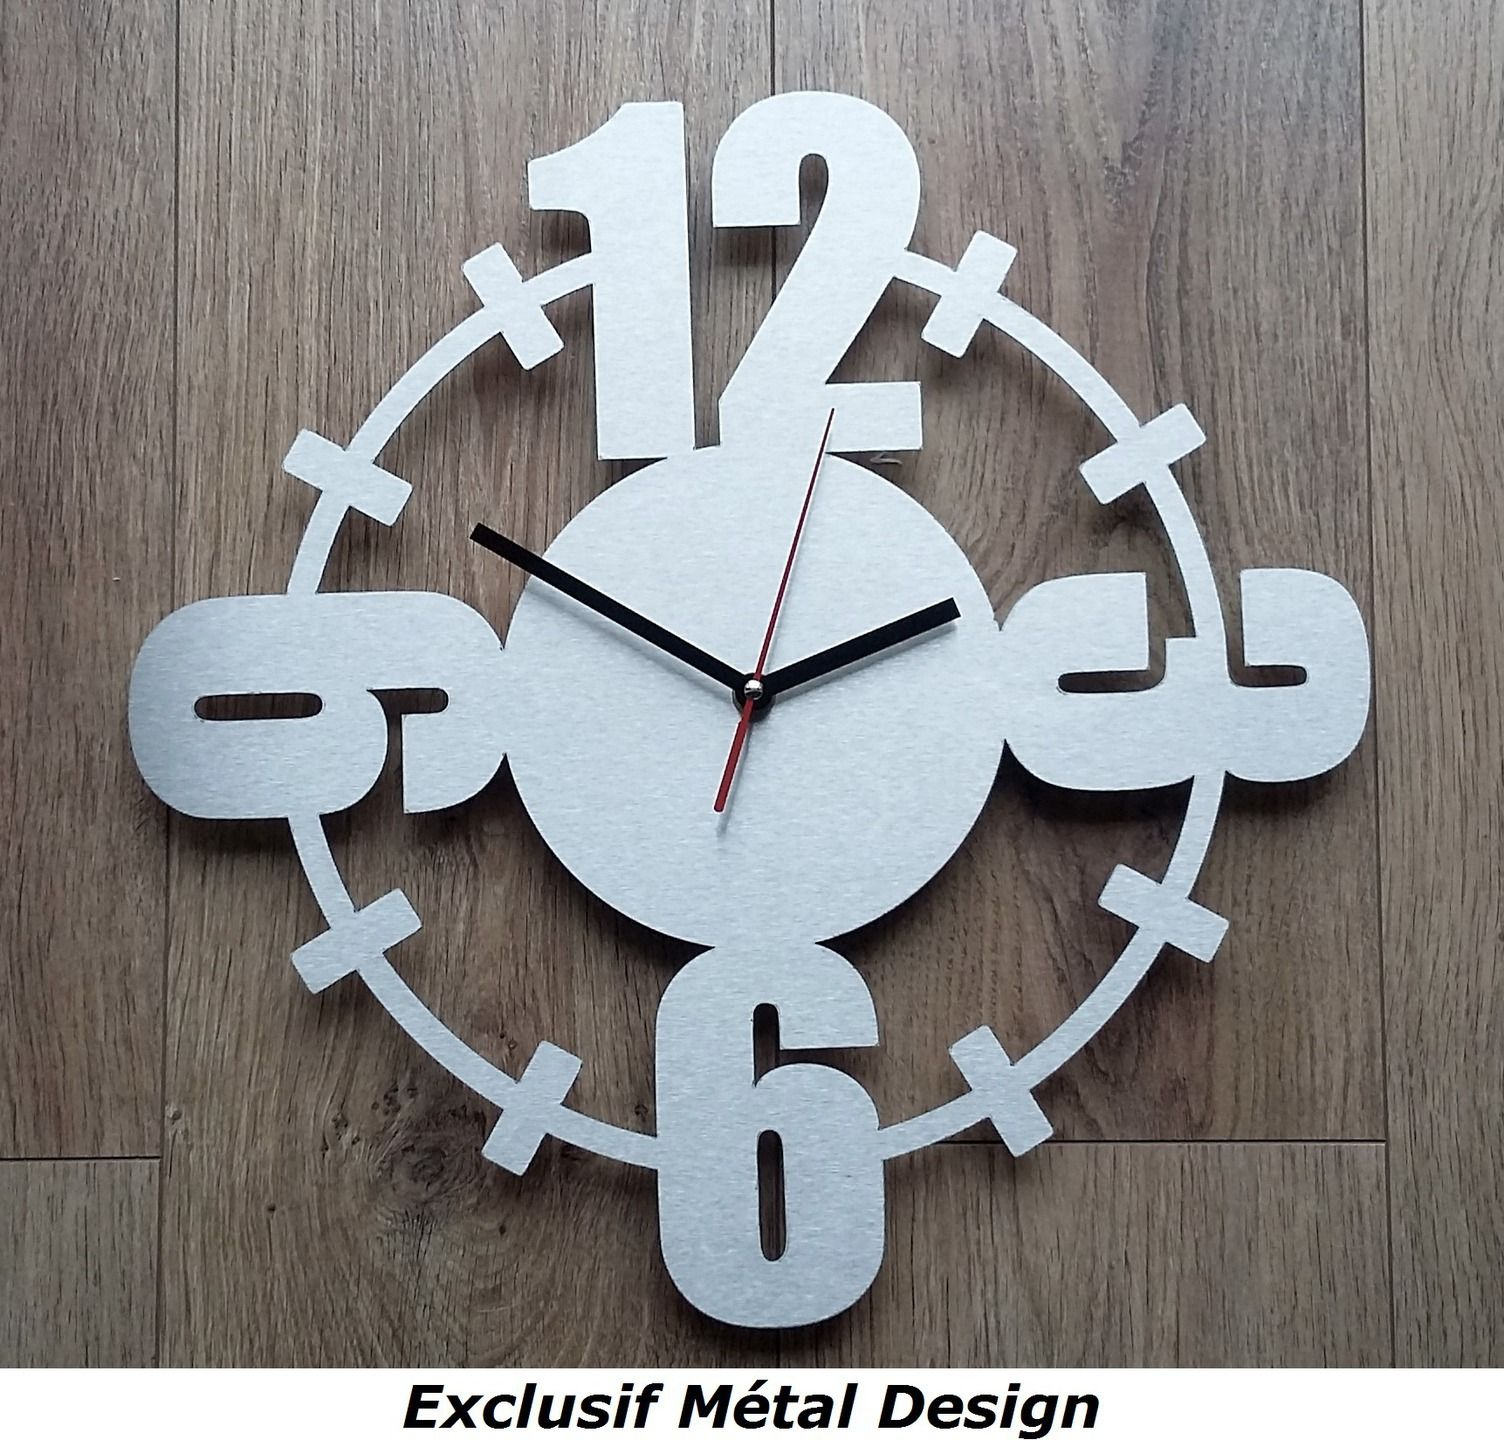 horloge contemporaine gros chiffres inox d corations murales par exclusif metal design id es. Black Bedroom Furniture Sets. Home Design Ideas